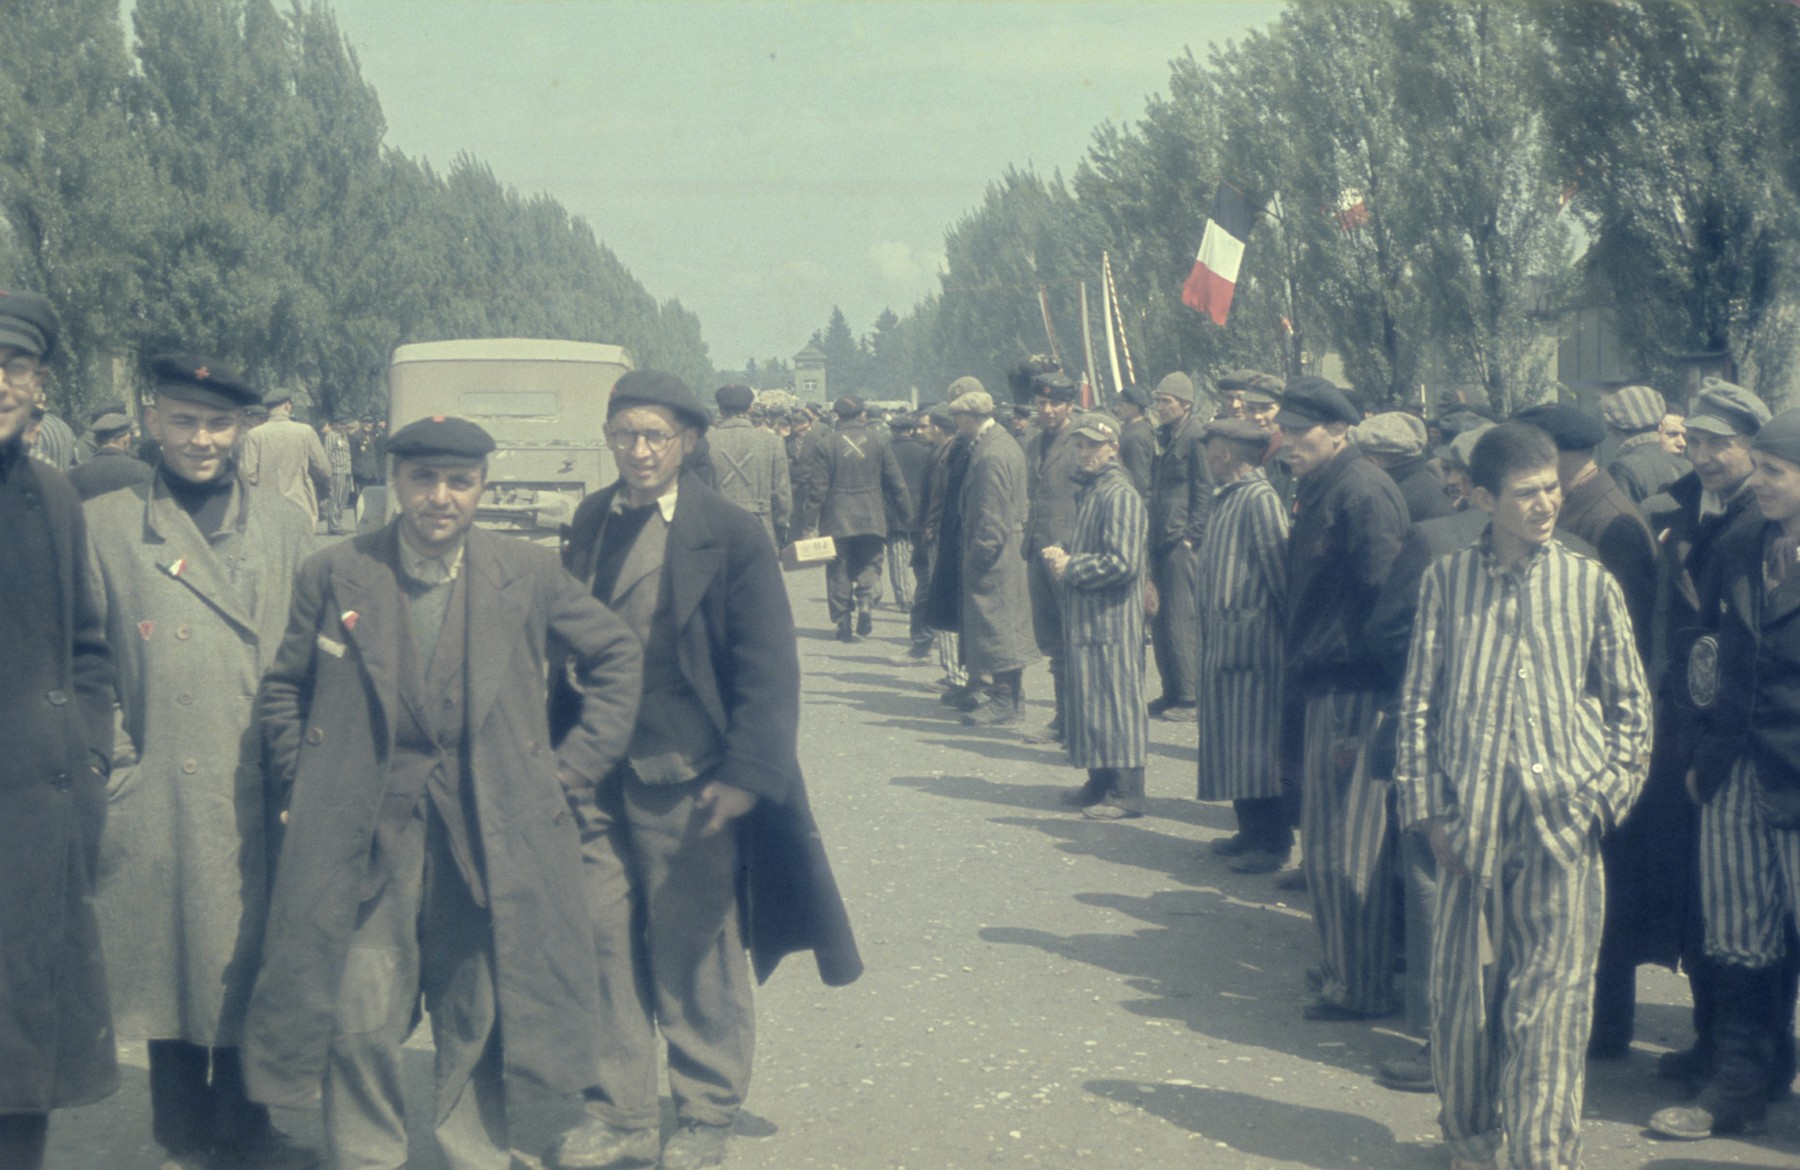 Former prisoners assemble on the main street in the newly liberated Dachau concentration camp.